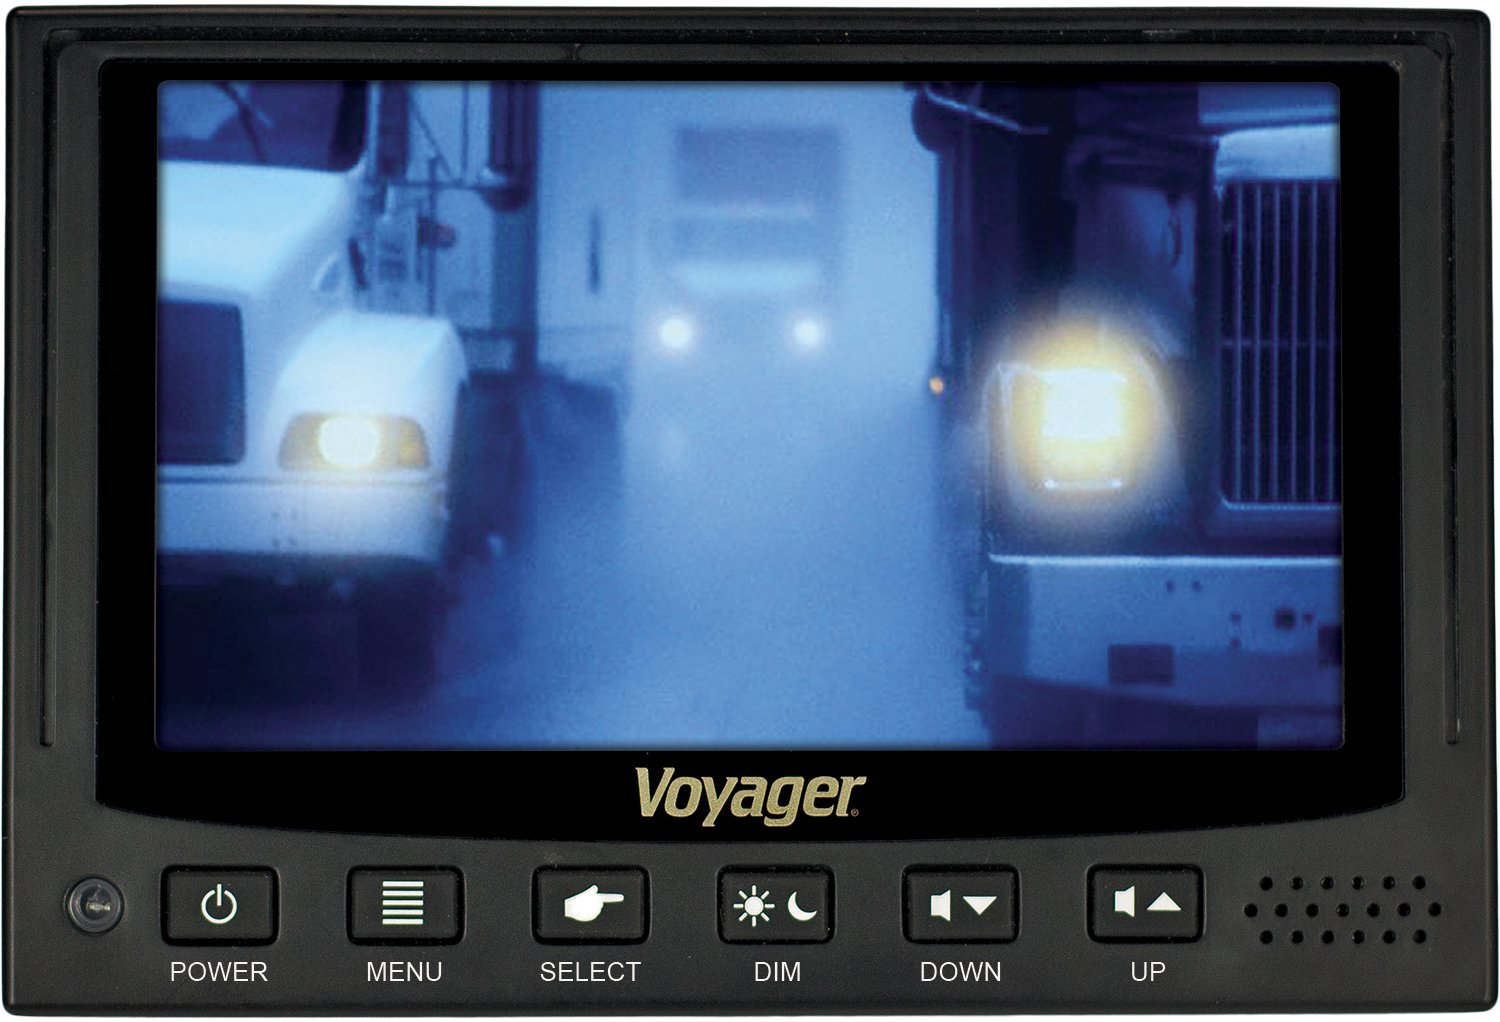 Voyager VOM74WP Heavy Duty 7'' QuadView Multi-Screen Rear/Back View Color LCD Monitor with 4 Camera Inputs and 6 Triggers; Single Image, Split-Screen, or QuadView View Modes; Built-In Audio Speaker